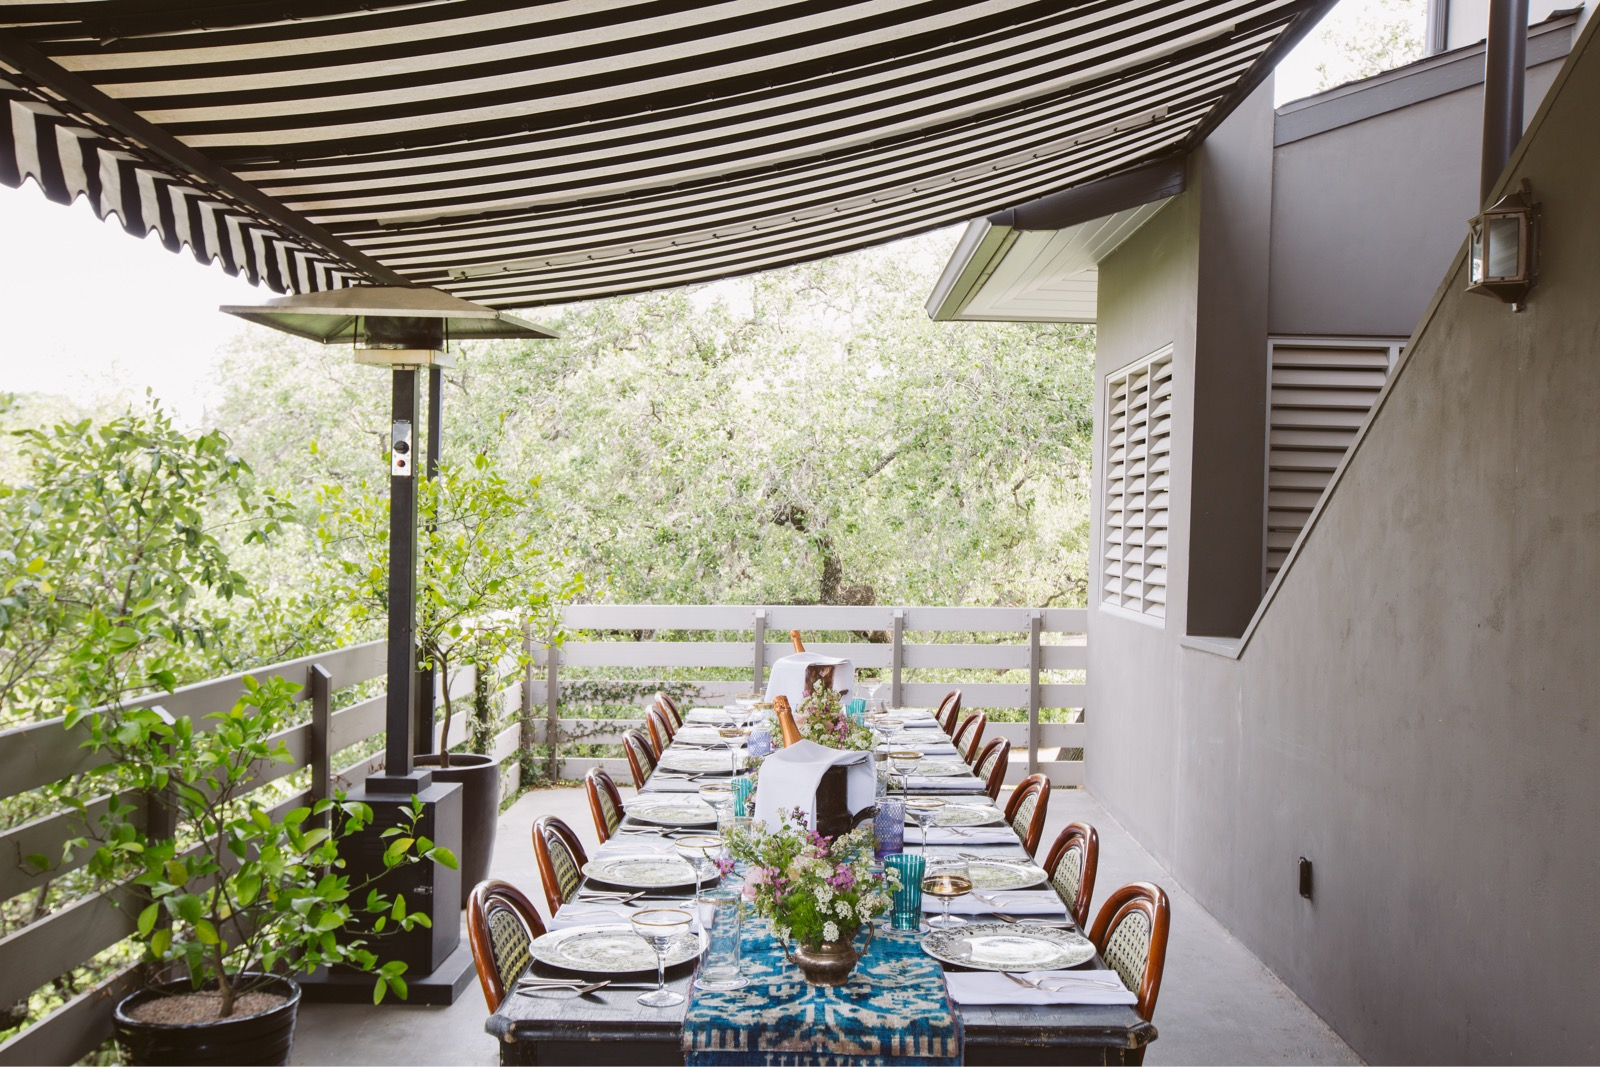 Outdoor long dining table under a stripped fabric awning